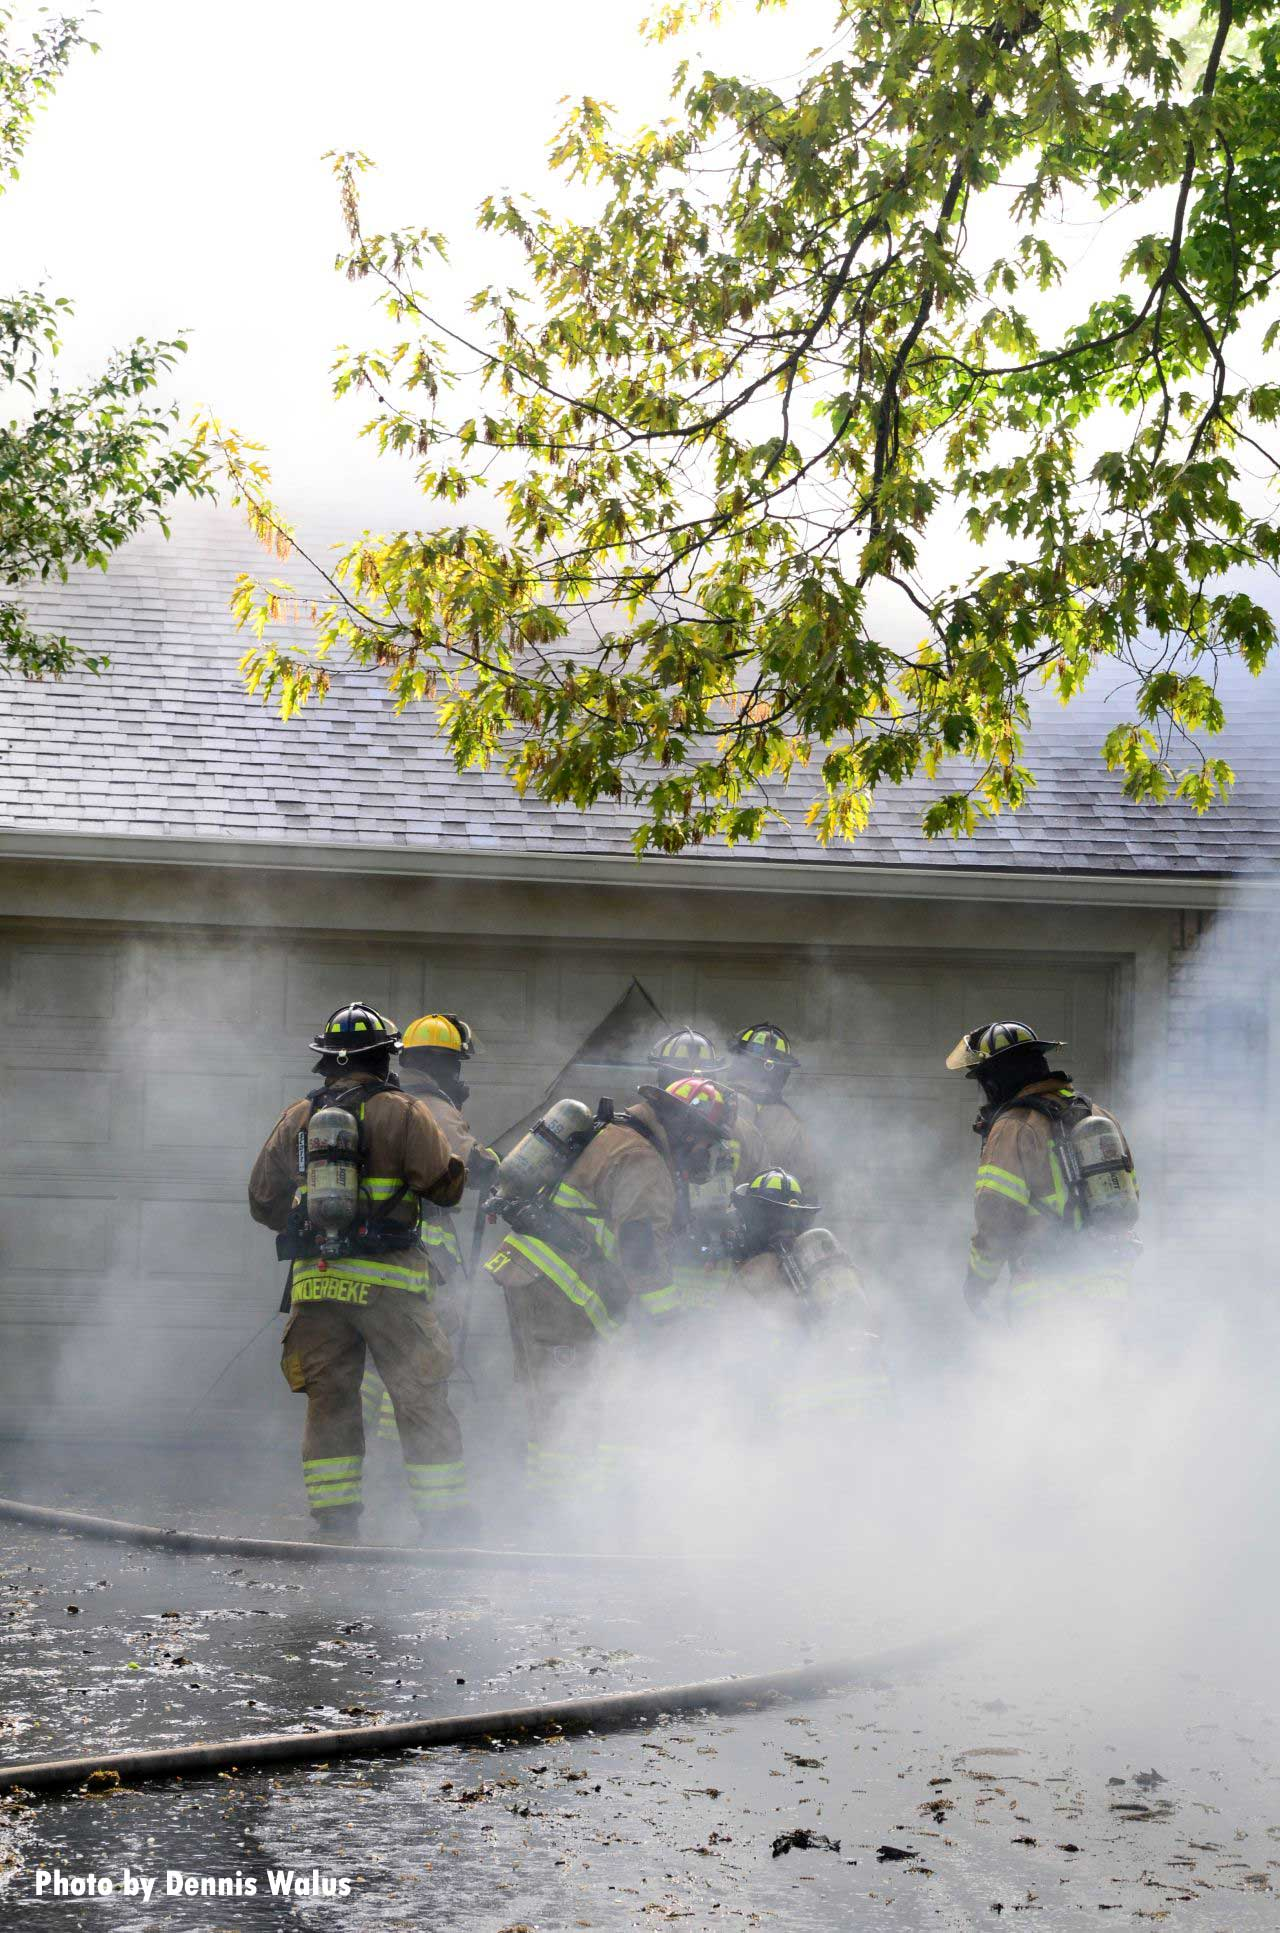 Firefighters surrounded in smoke